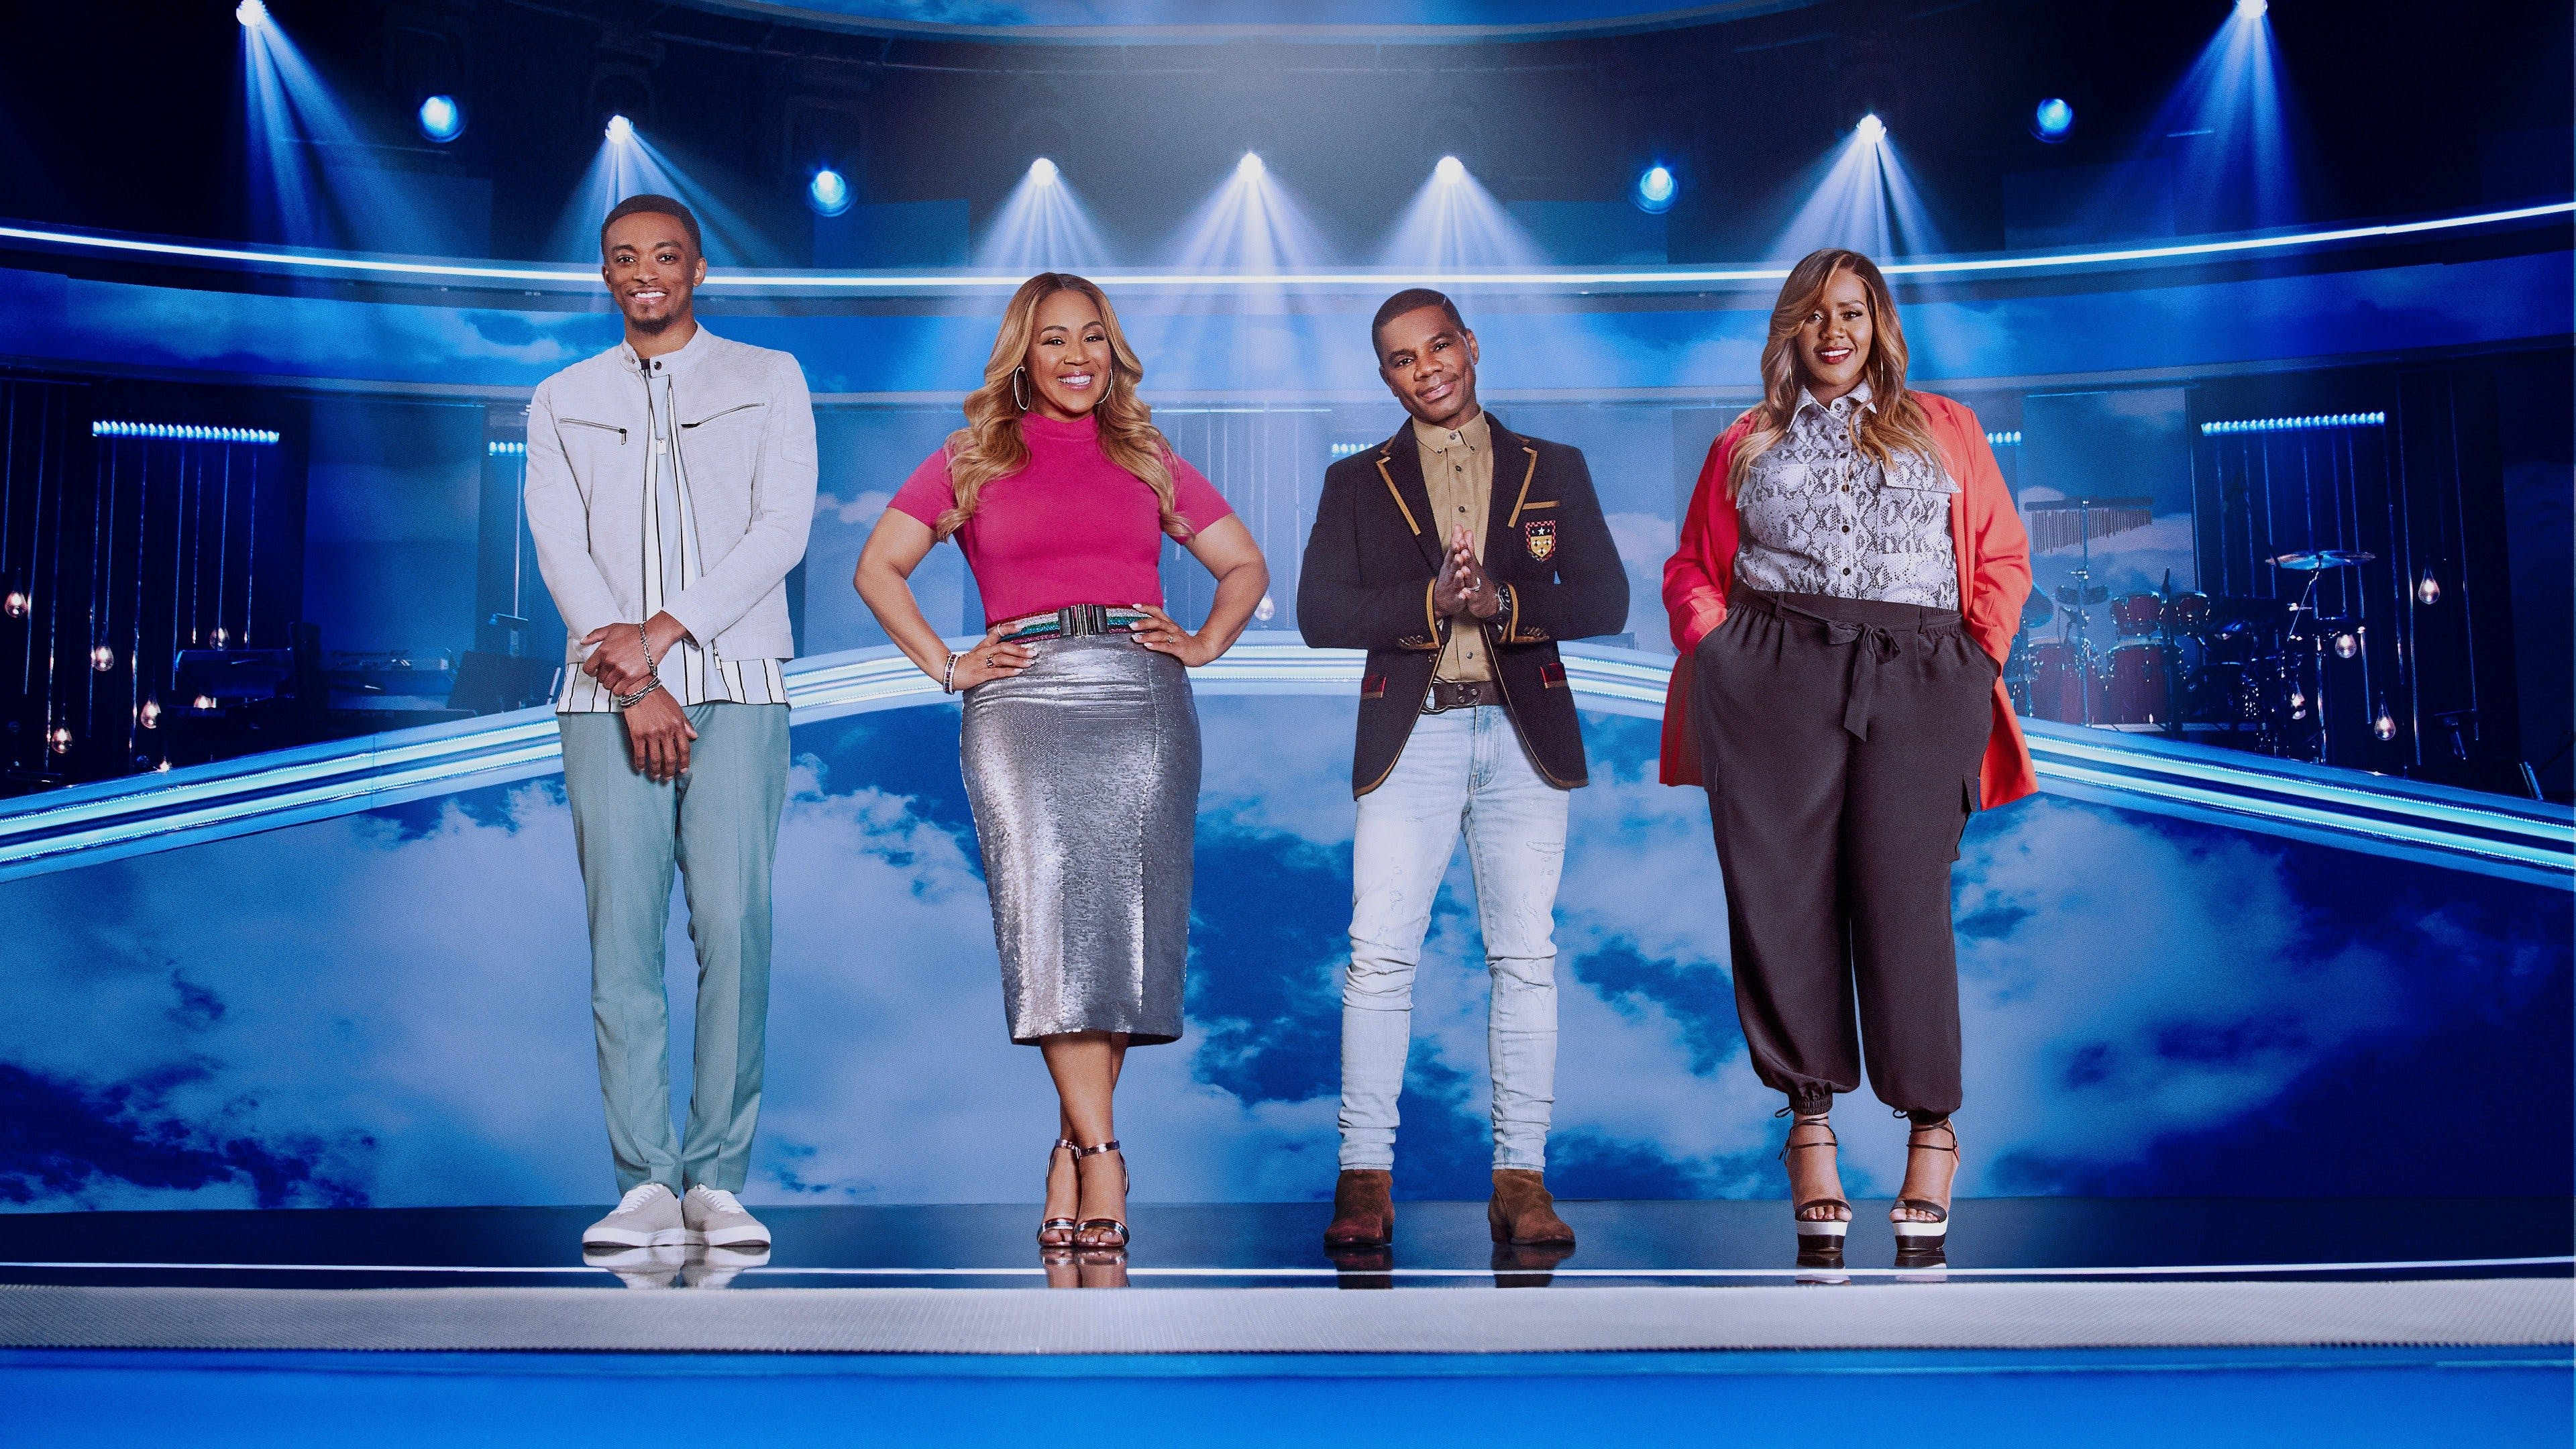 Sunday Best Season 9 Episode 3